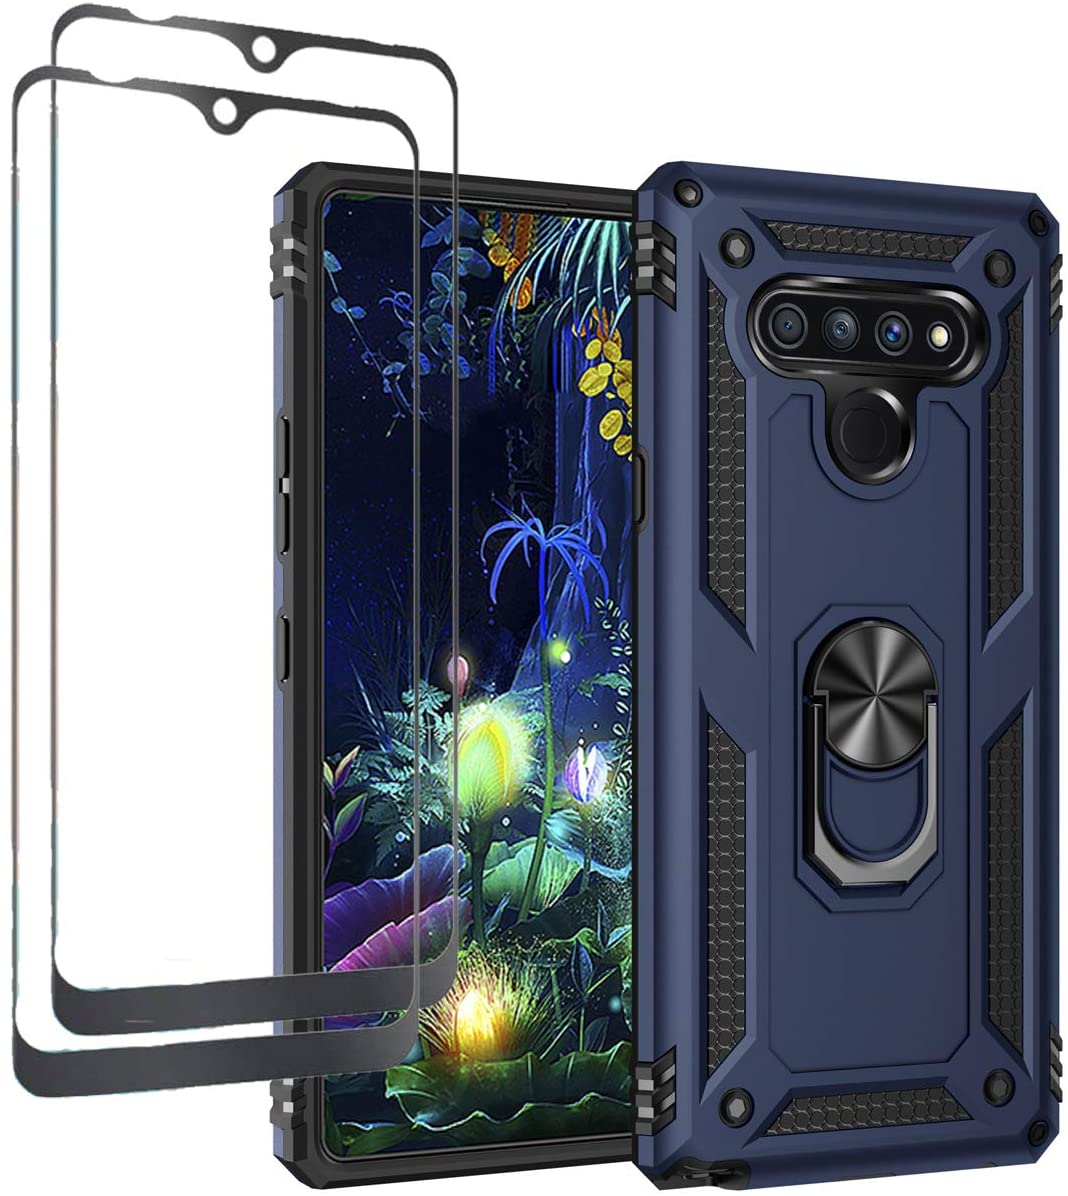 Tznzxm LG Stylo 6 Case, LG Stylo 6 Tempered Glass[2 Pcs],[ Military Grade ][Impact Resistant][Defender][Metal Ring Grip ][Magnetic Car Mount] Armor Kickstand Protective Case Screen Protector Blue